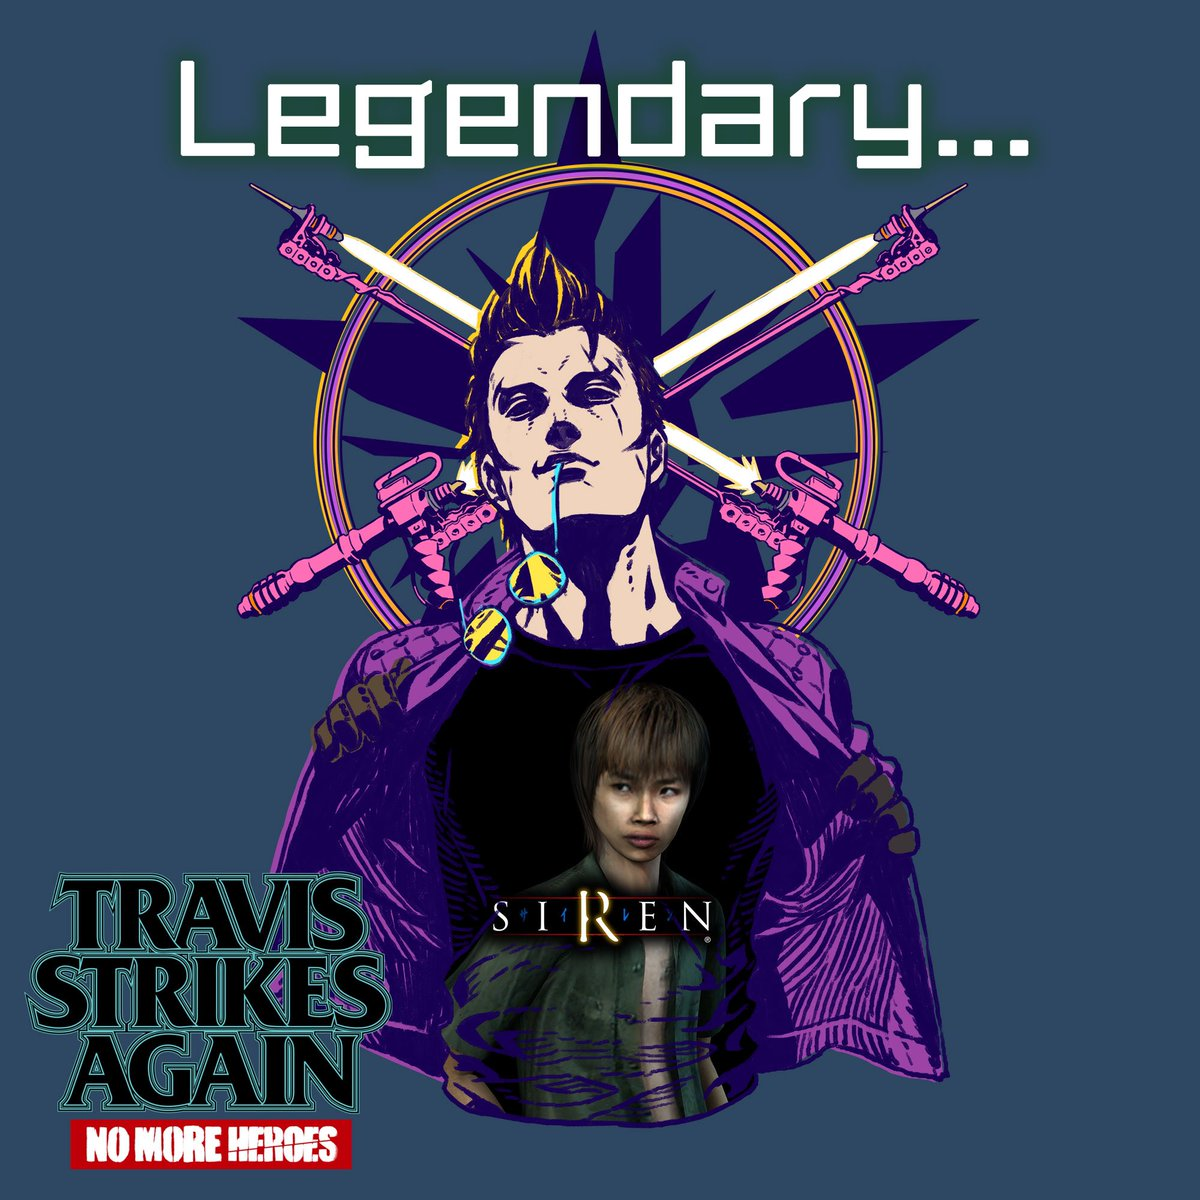 Travis Strikes Again: No More Heroes adding a t-shirt based on the PlayStation horror series Siren